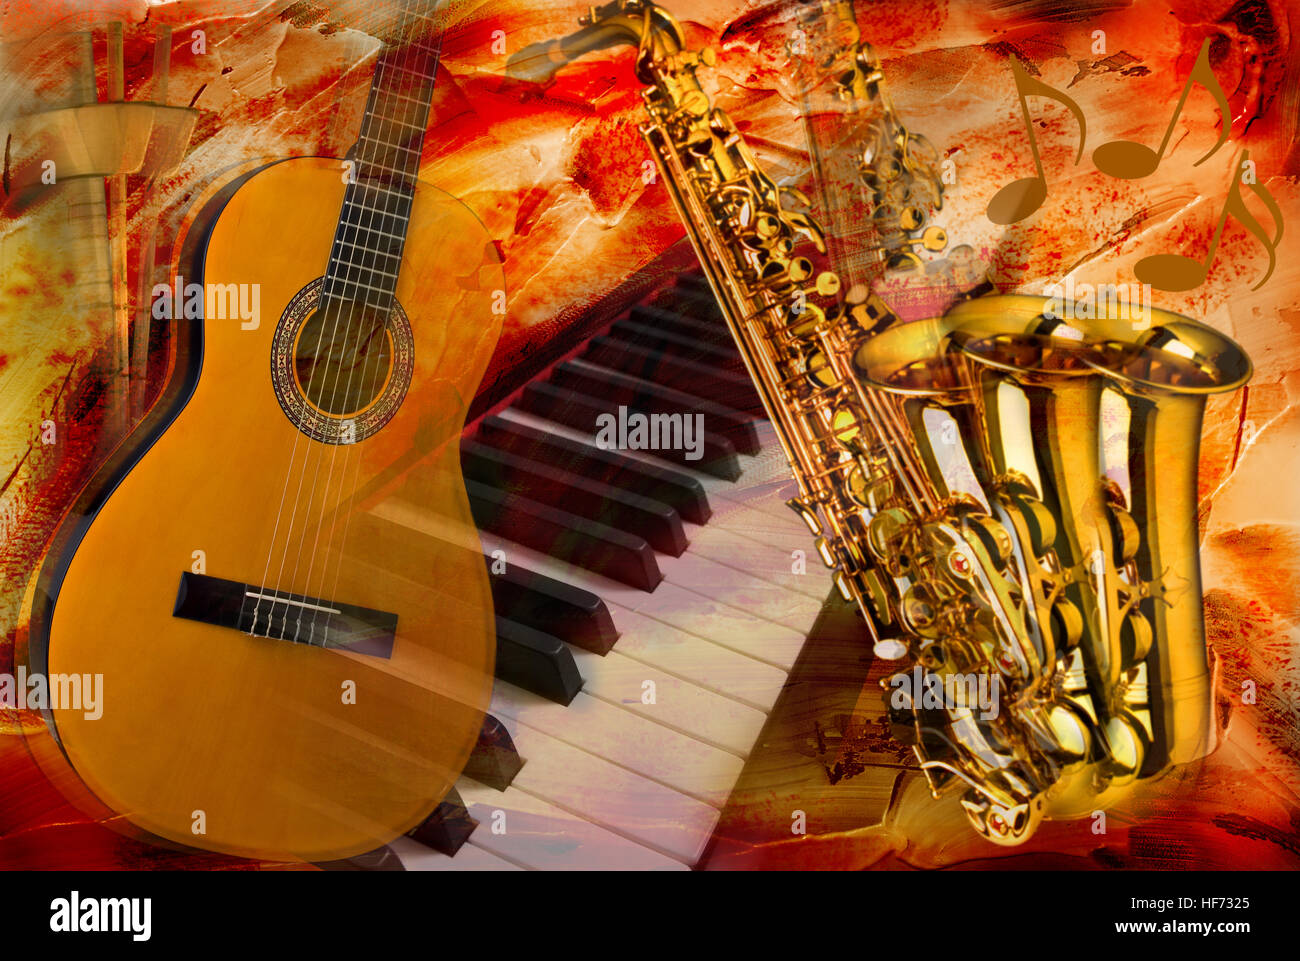 abstract musical instruments collage - Stock Image